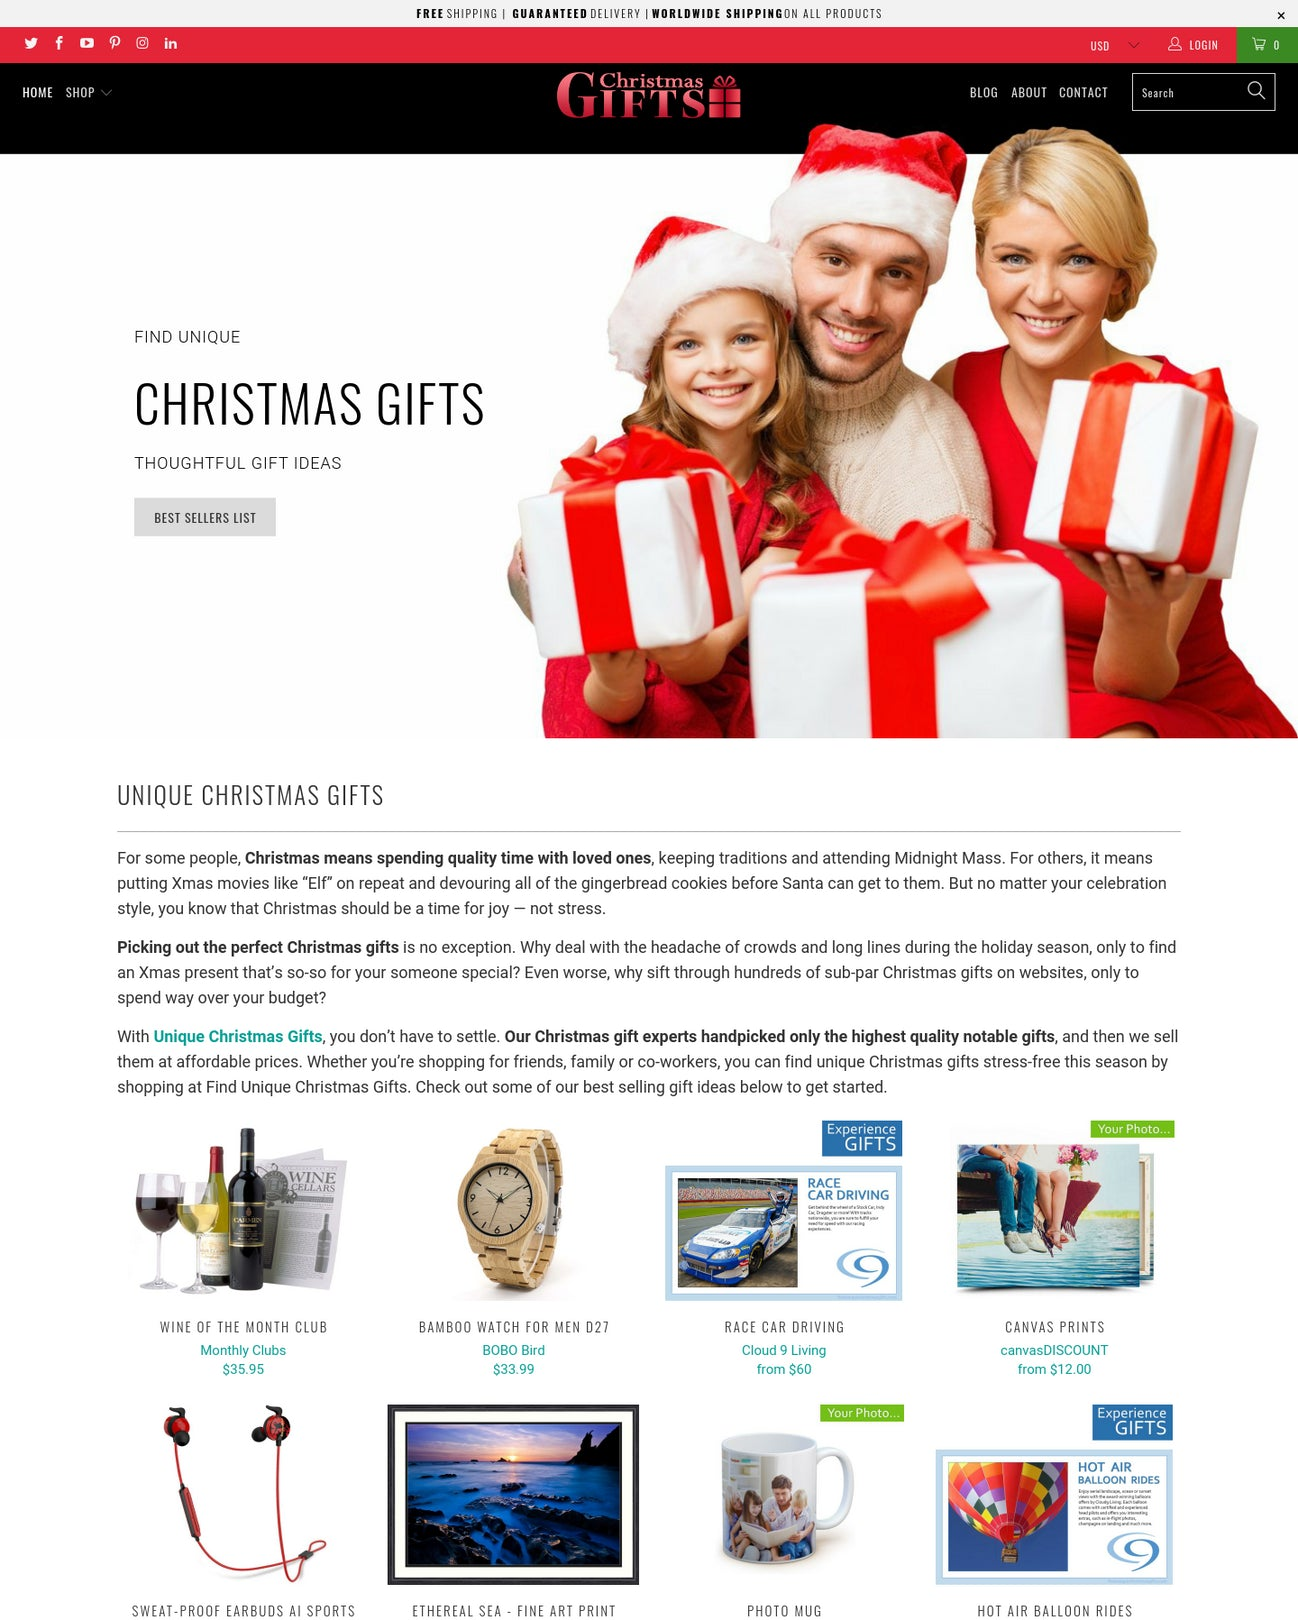 Find Unique Christmas For Sale | Buy an Online Business